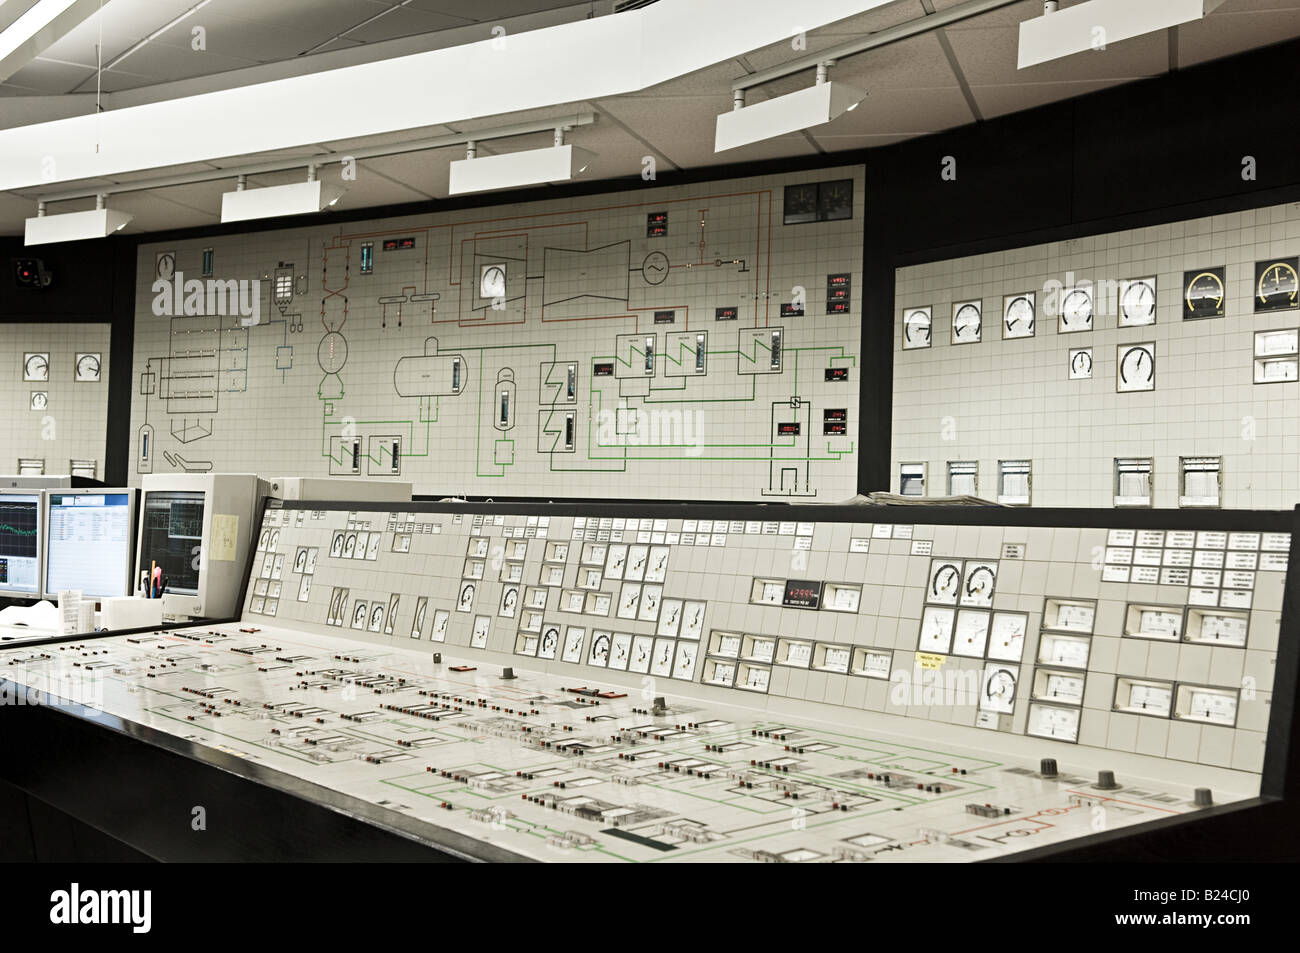 Control panel in power plant - Stock Image